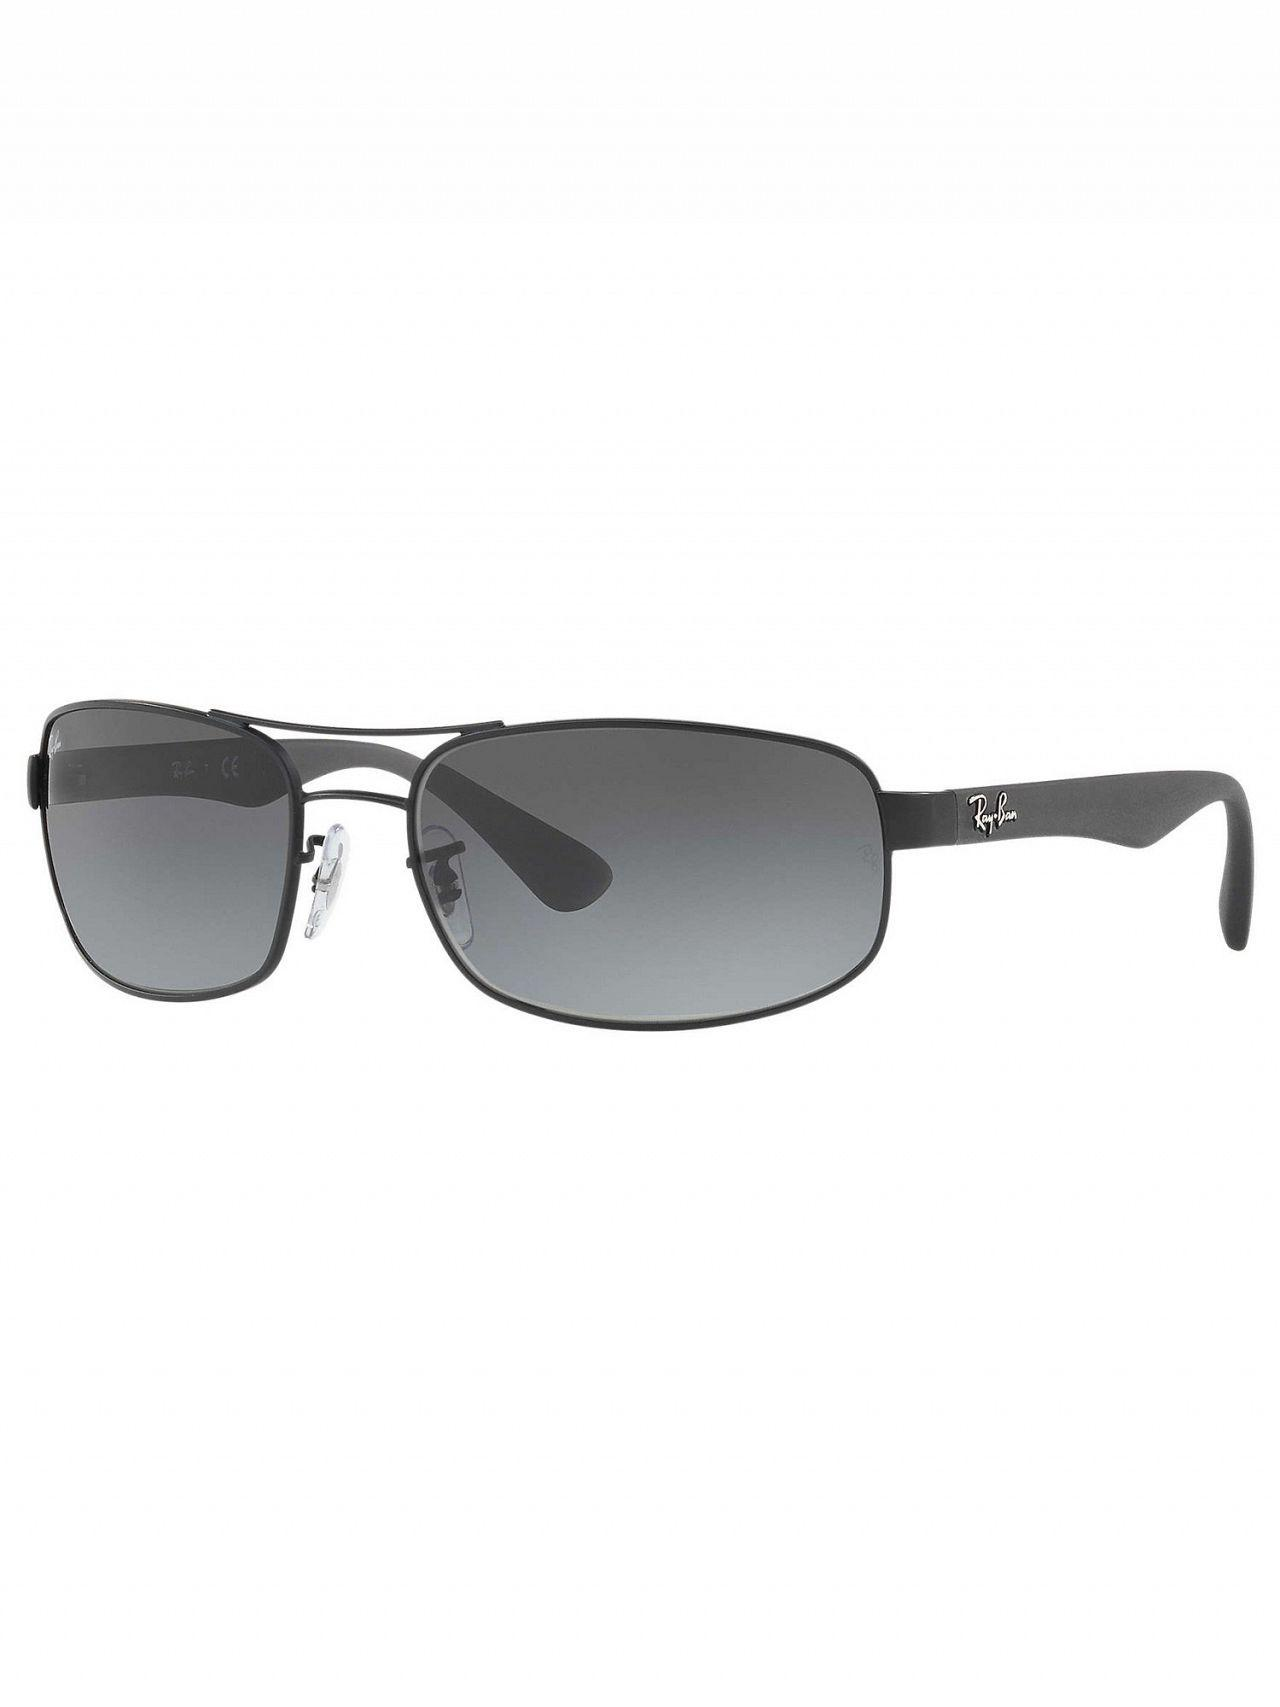 a7754c3734 Lyst - Ray-Ban Grey Gradient Orb Steel Sunglasses in Gray for Men